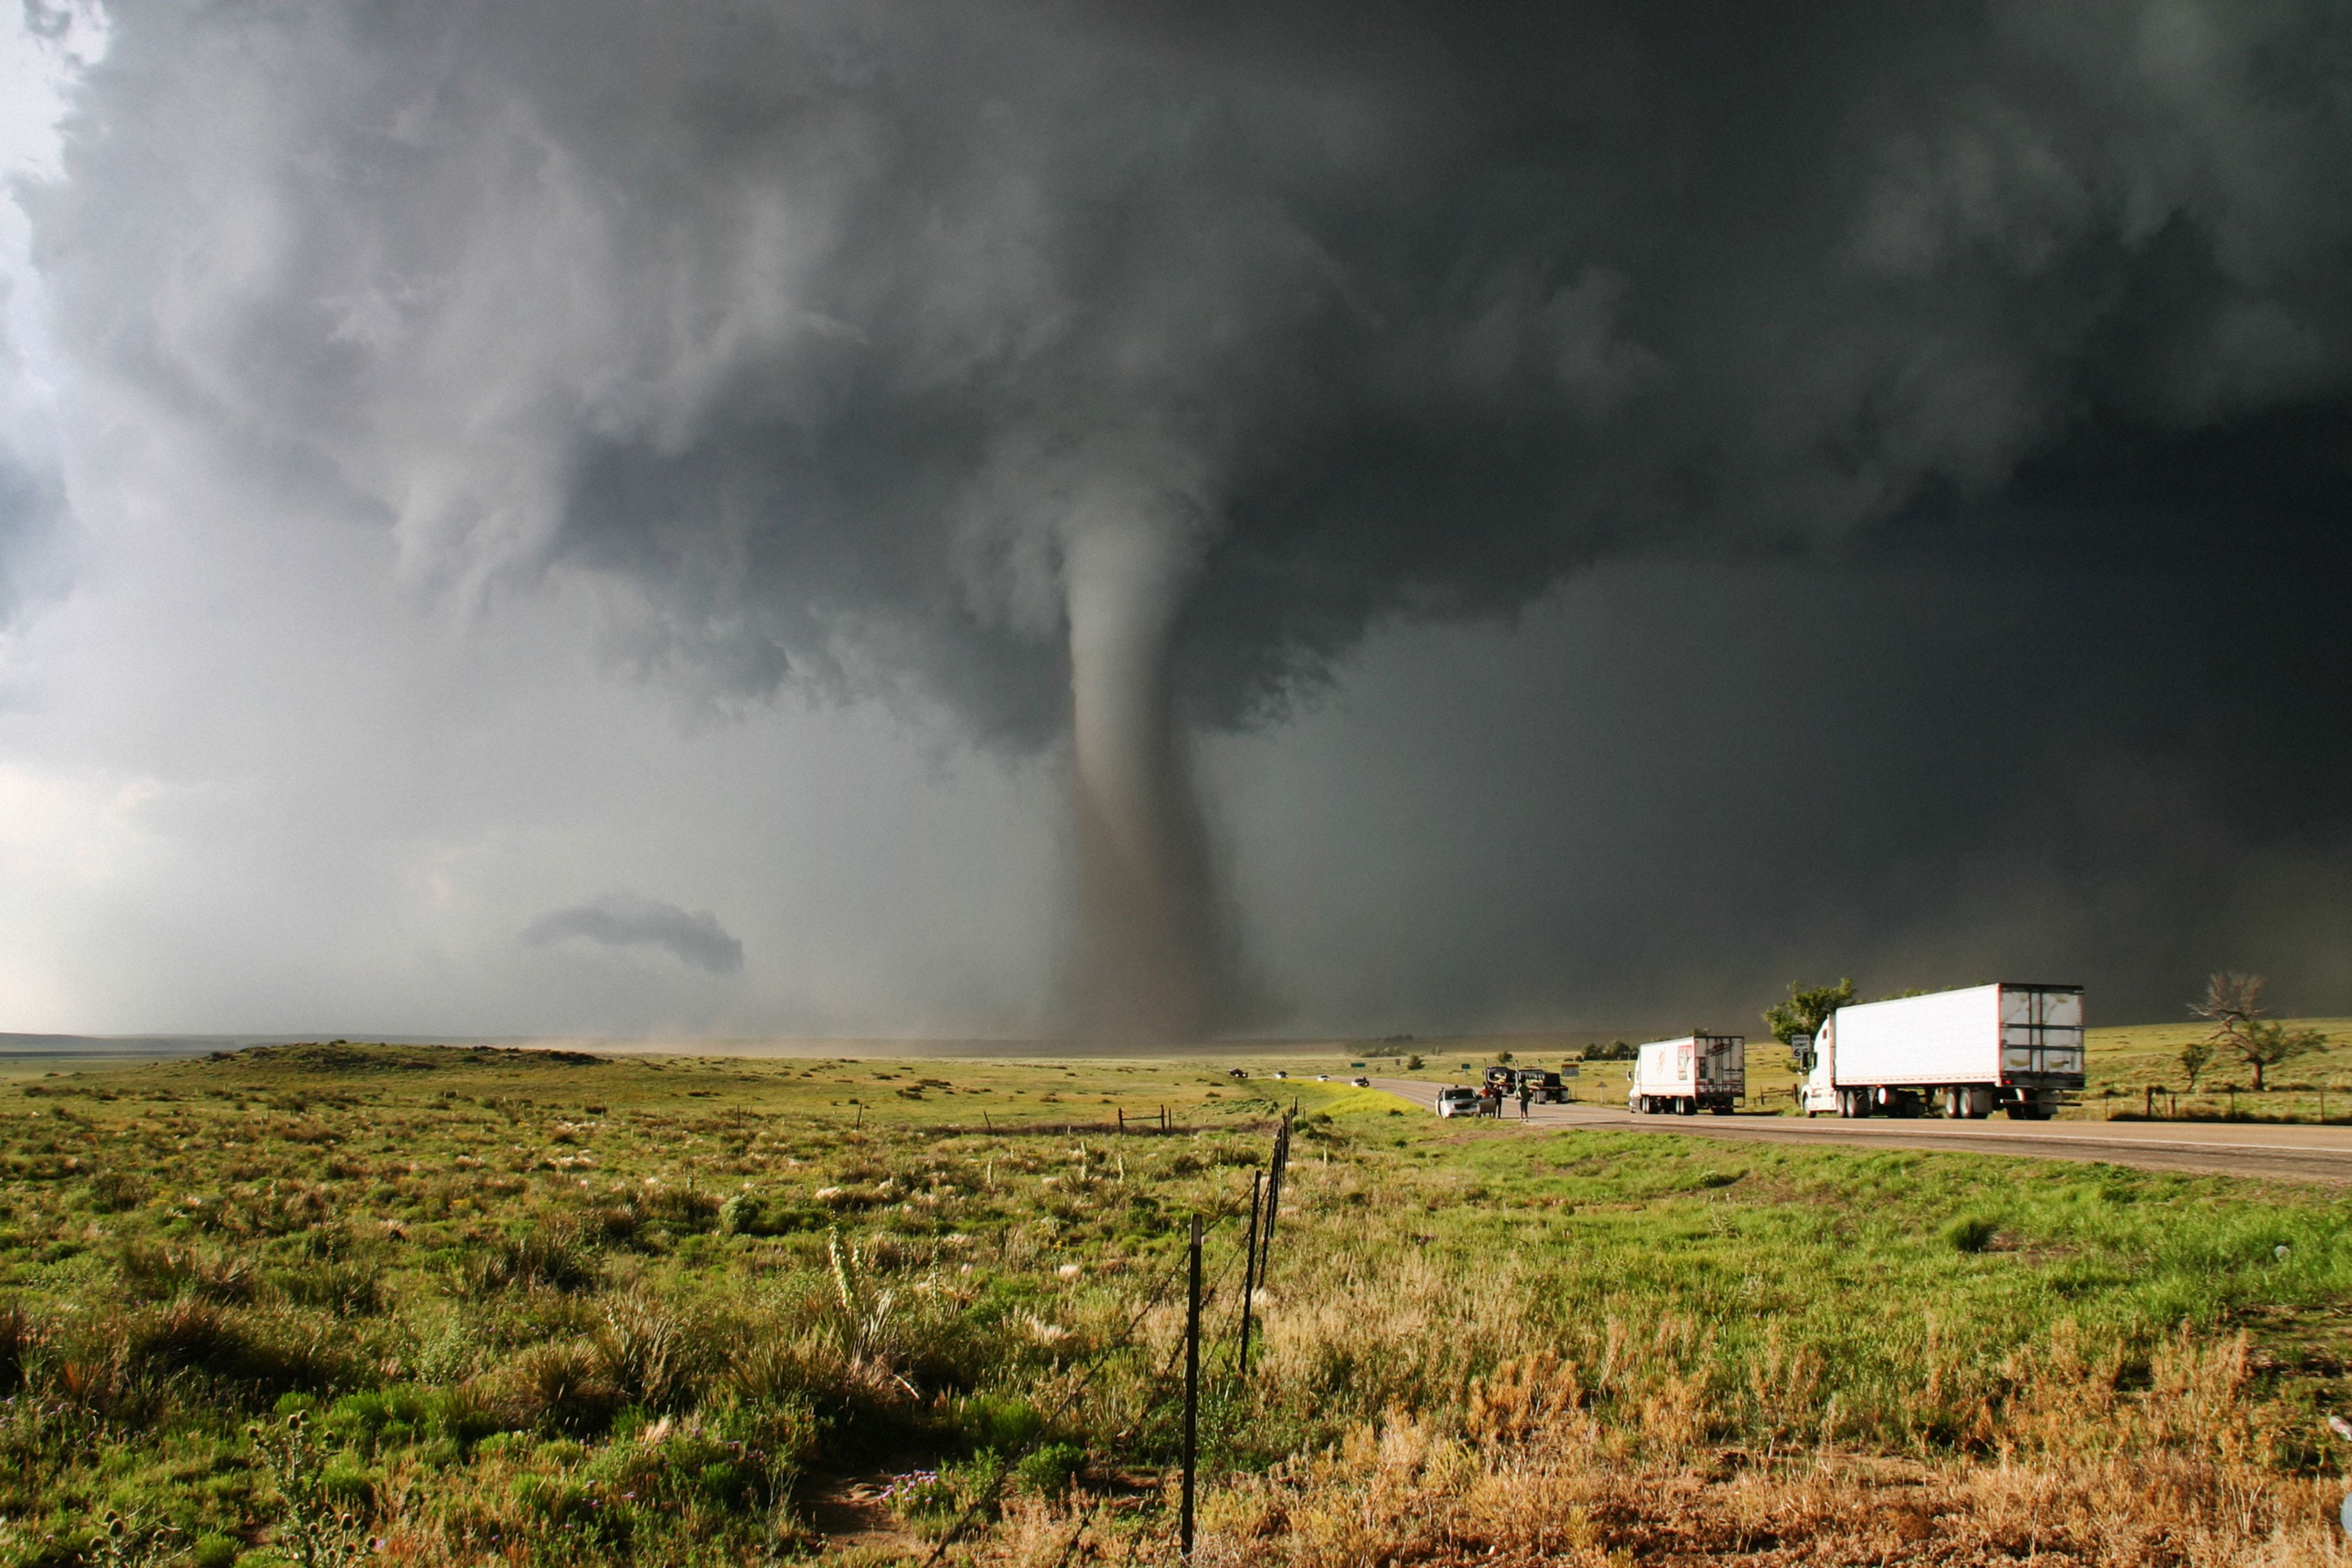 Tornado Safety What To Do During A Tornado